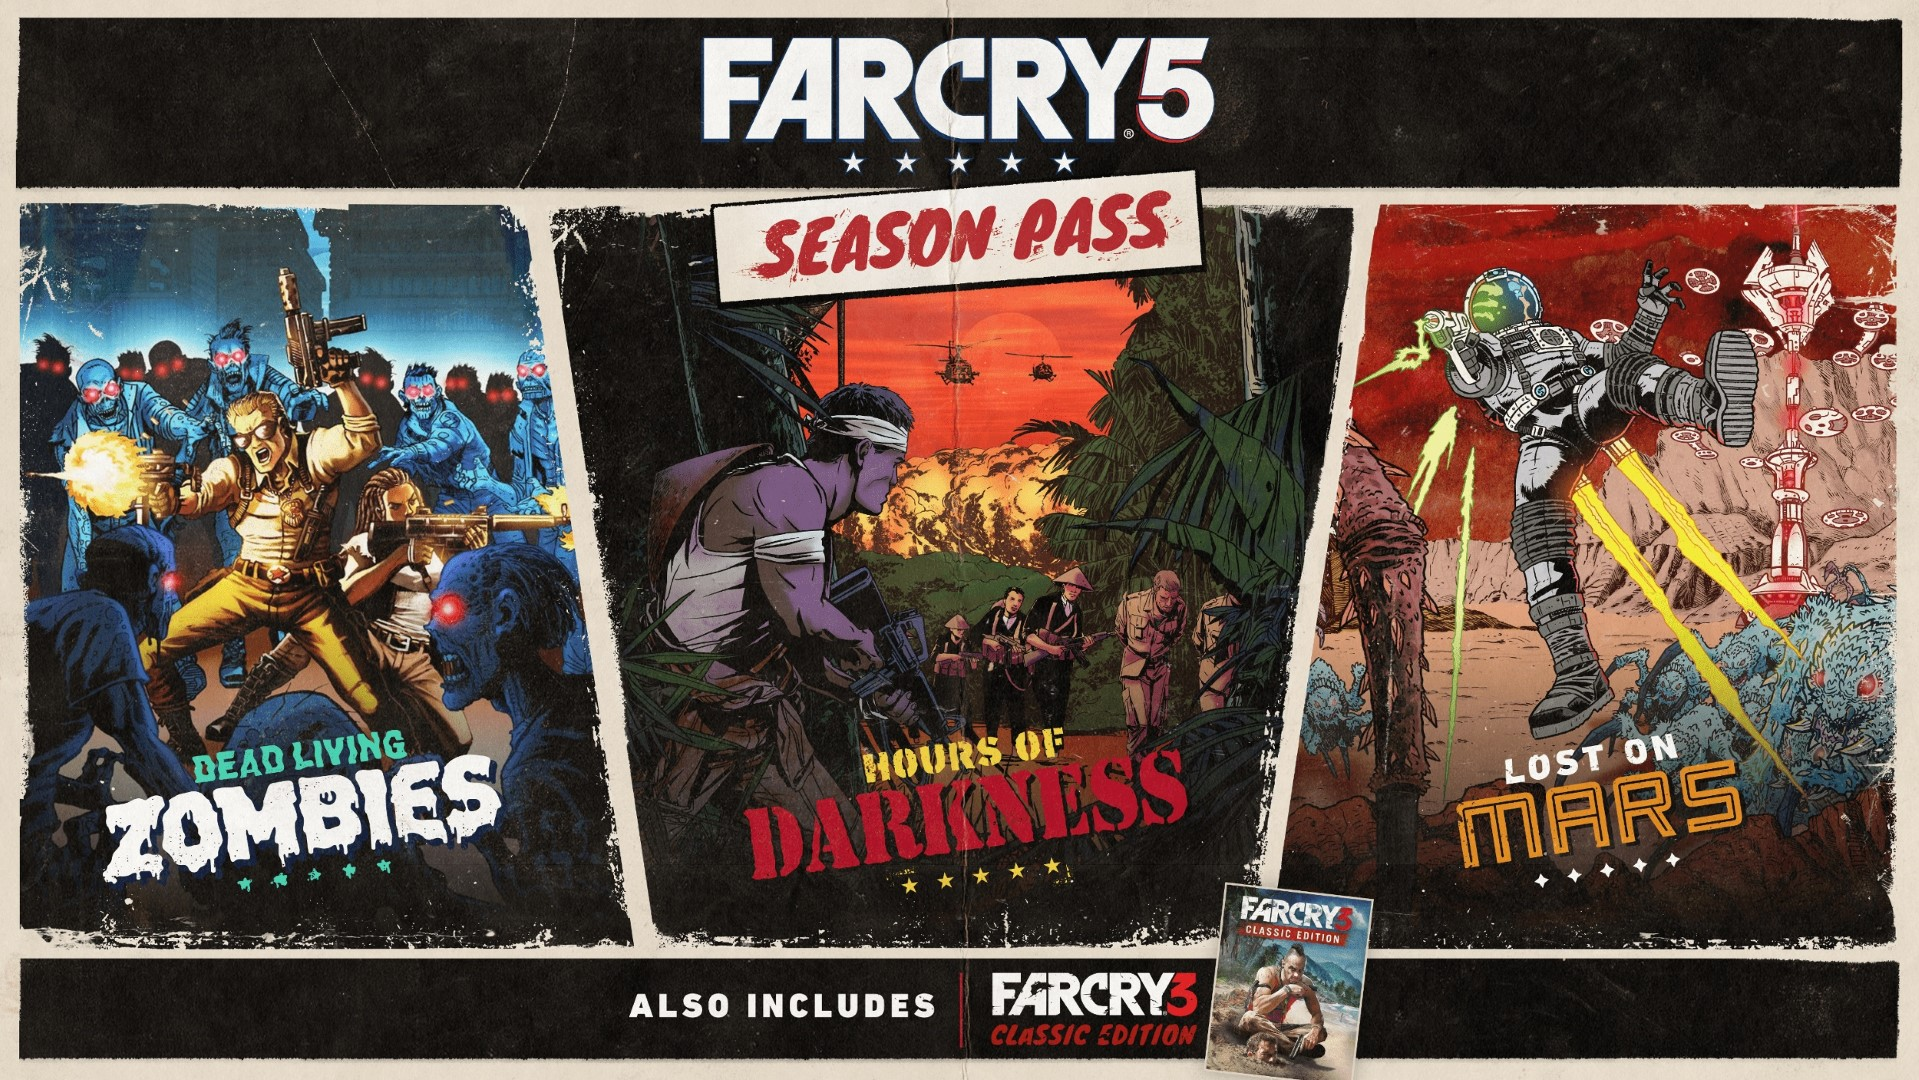 FCZ KEYART SeasonPass